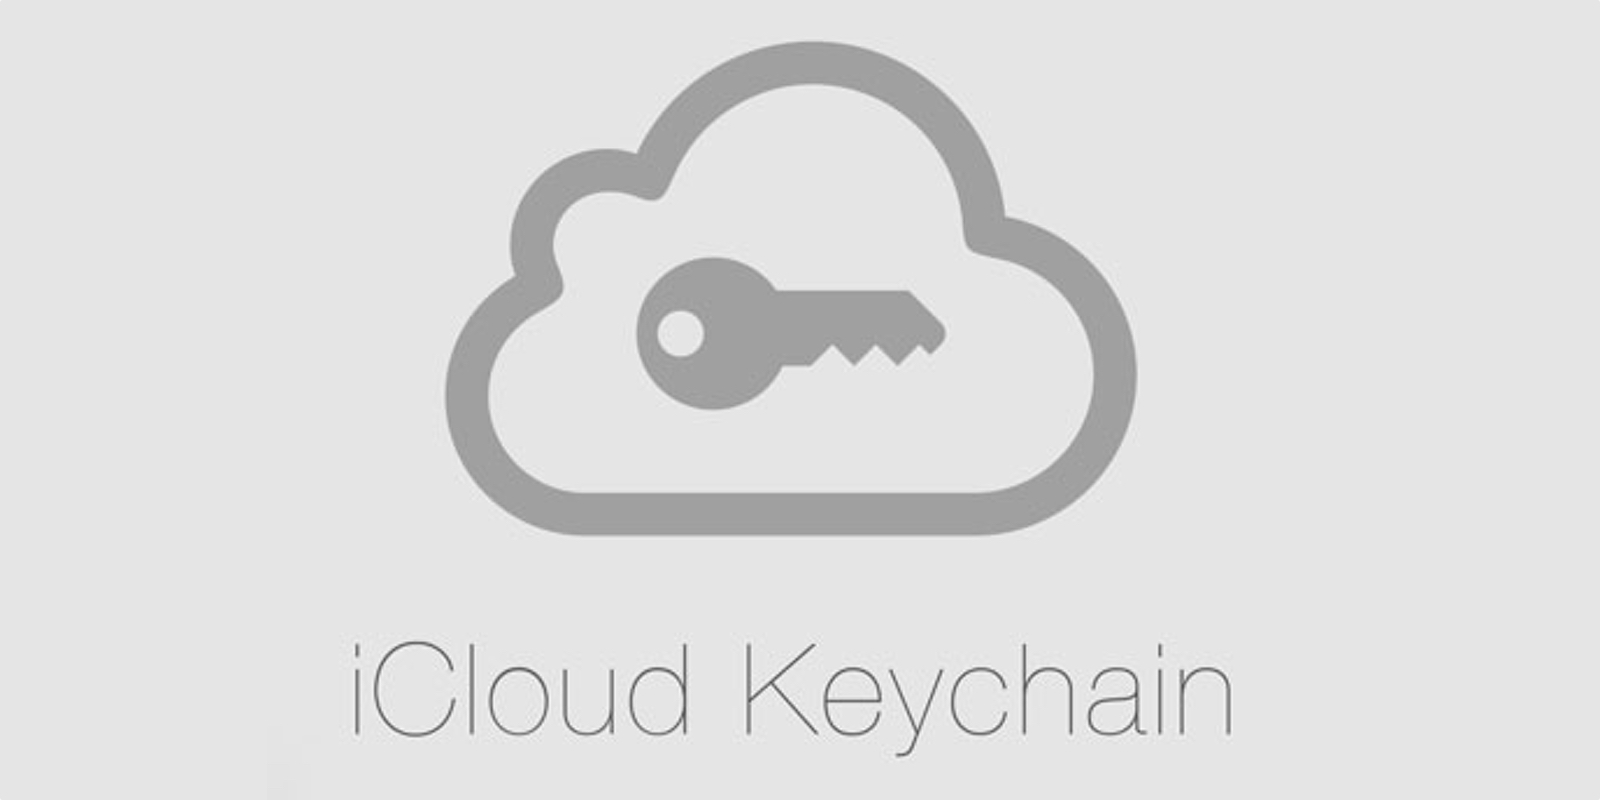 Logo of iCloud Keychain, which the Phone Breaker can crack.